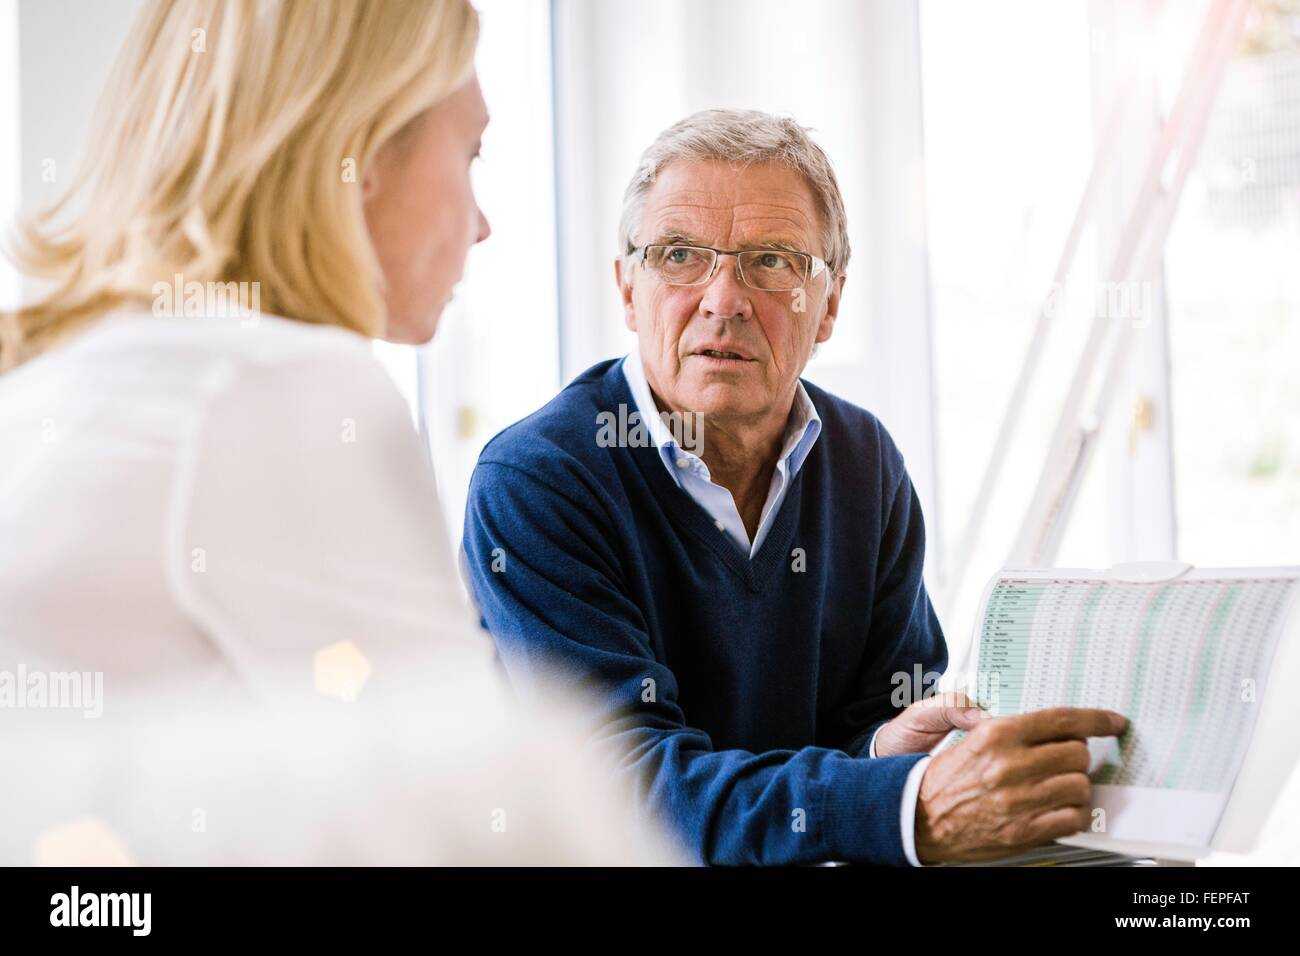 Couple sitting discussing paperwork - Stock Image